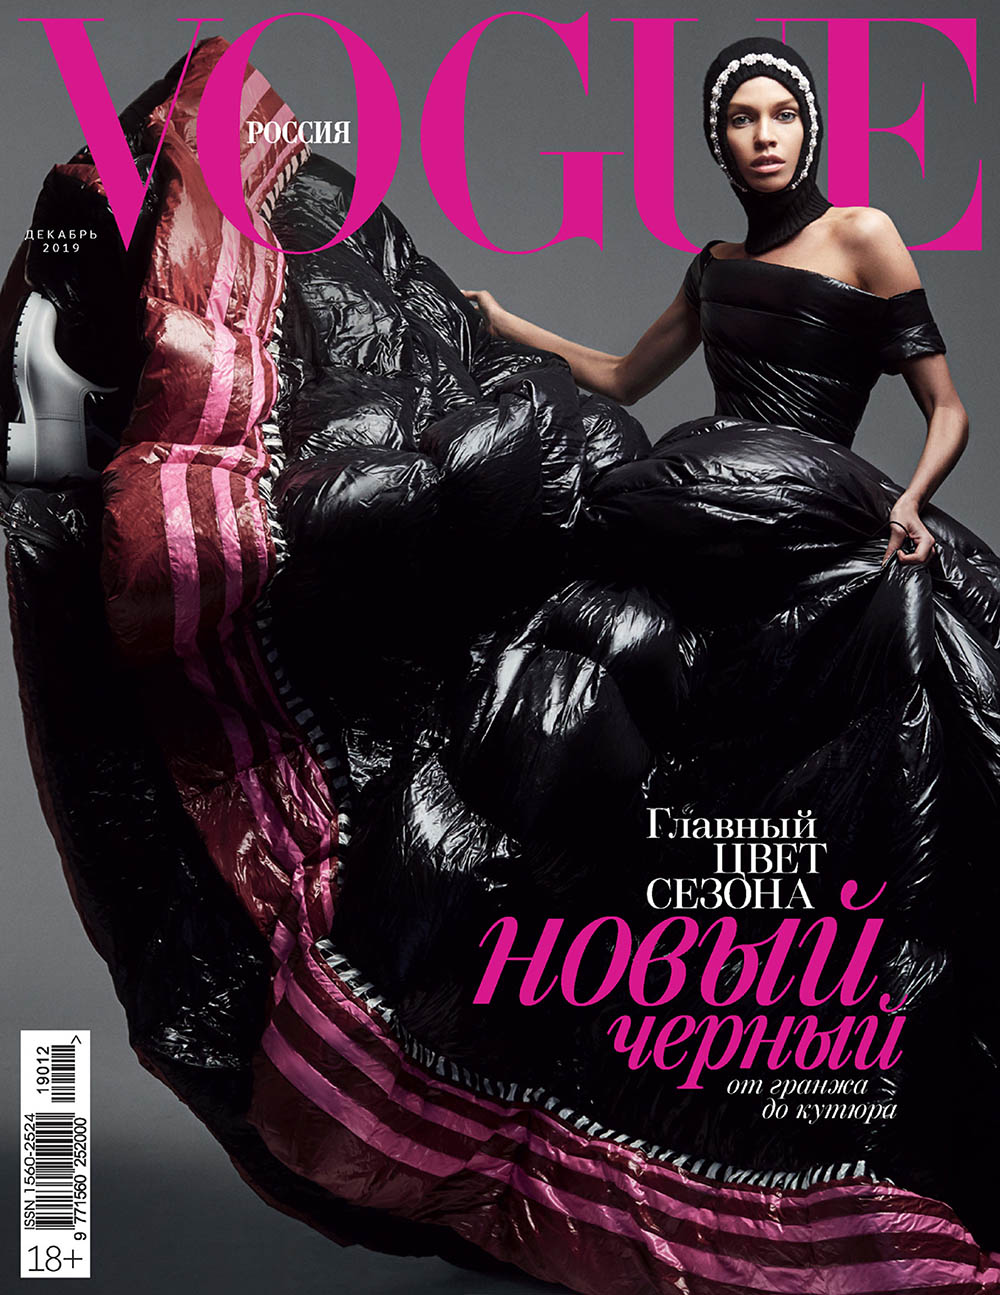 Irina Shayk and Stella Maxwell cover Vogue Russia December 2019 by Zoey GrossmanIrina Shayk and Stella Maxwell cover Vogue Russia December 2019 by Zoey Grossman